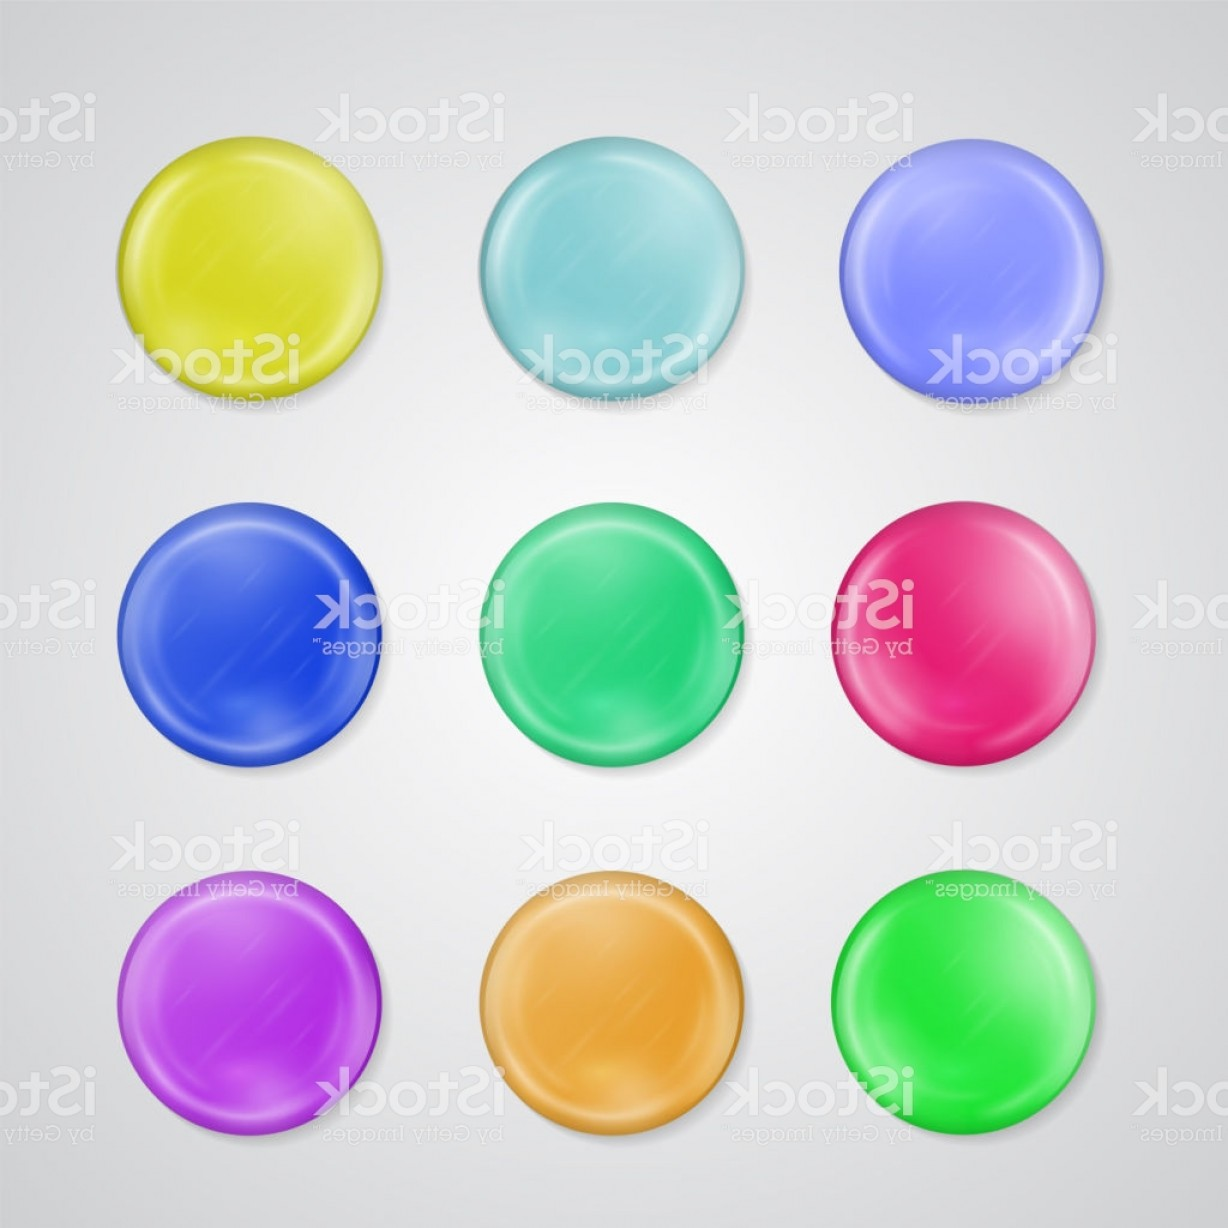 Vectors Buttons And Menus: Set Of D Realistic Buttons Or Badge Templates Colorful Plastic Glossy Knobs For Gm